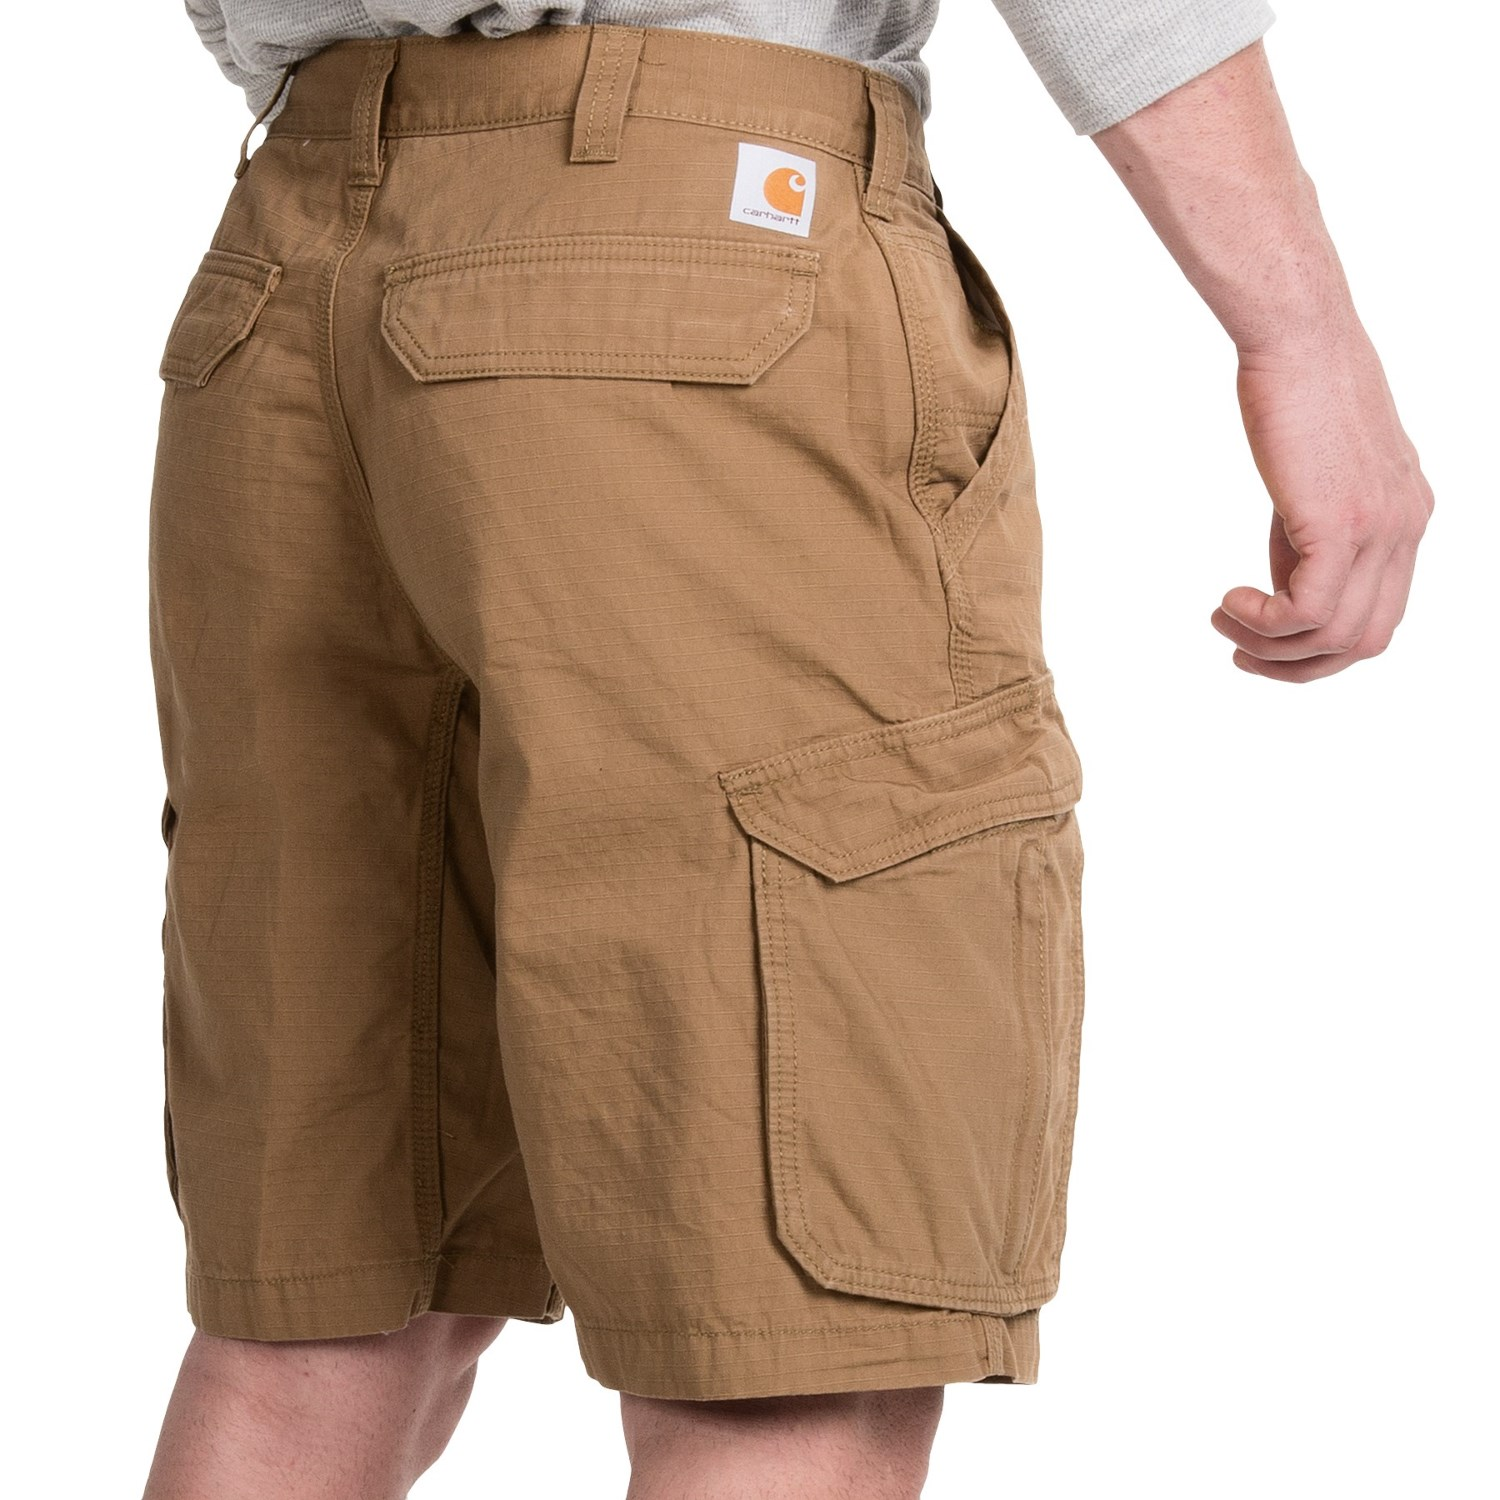 For fast-paced workouts, a short, lightweight and breathable pair of running shorts or athletic shorts is ideal. For working outside and general wear, a pair of medium-length cargo shorts or work shorts is always a versatile option.